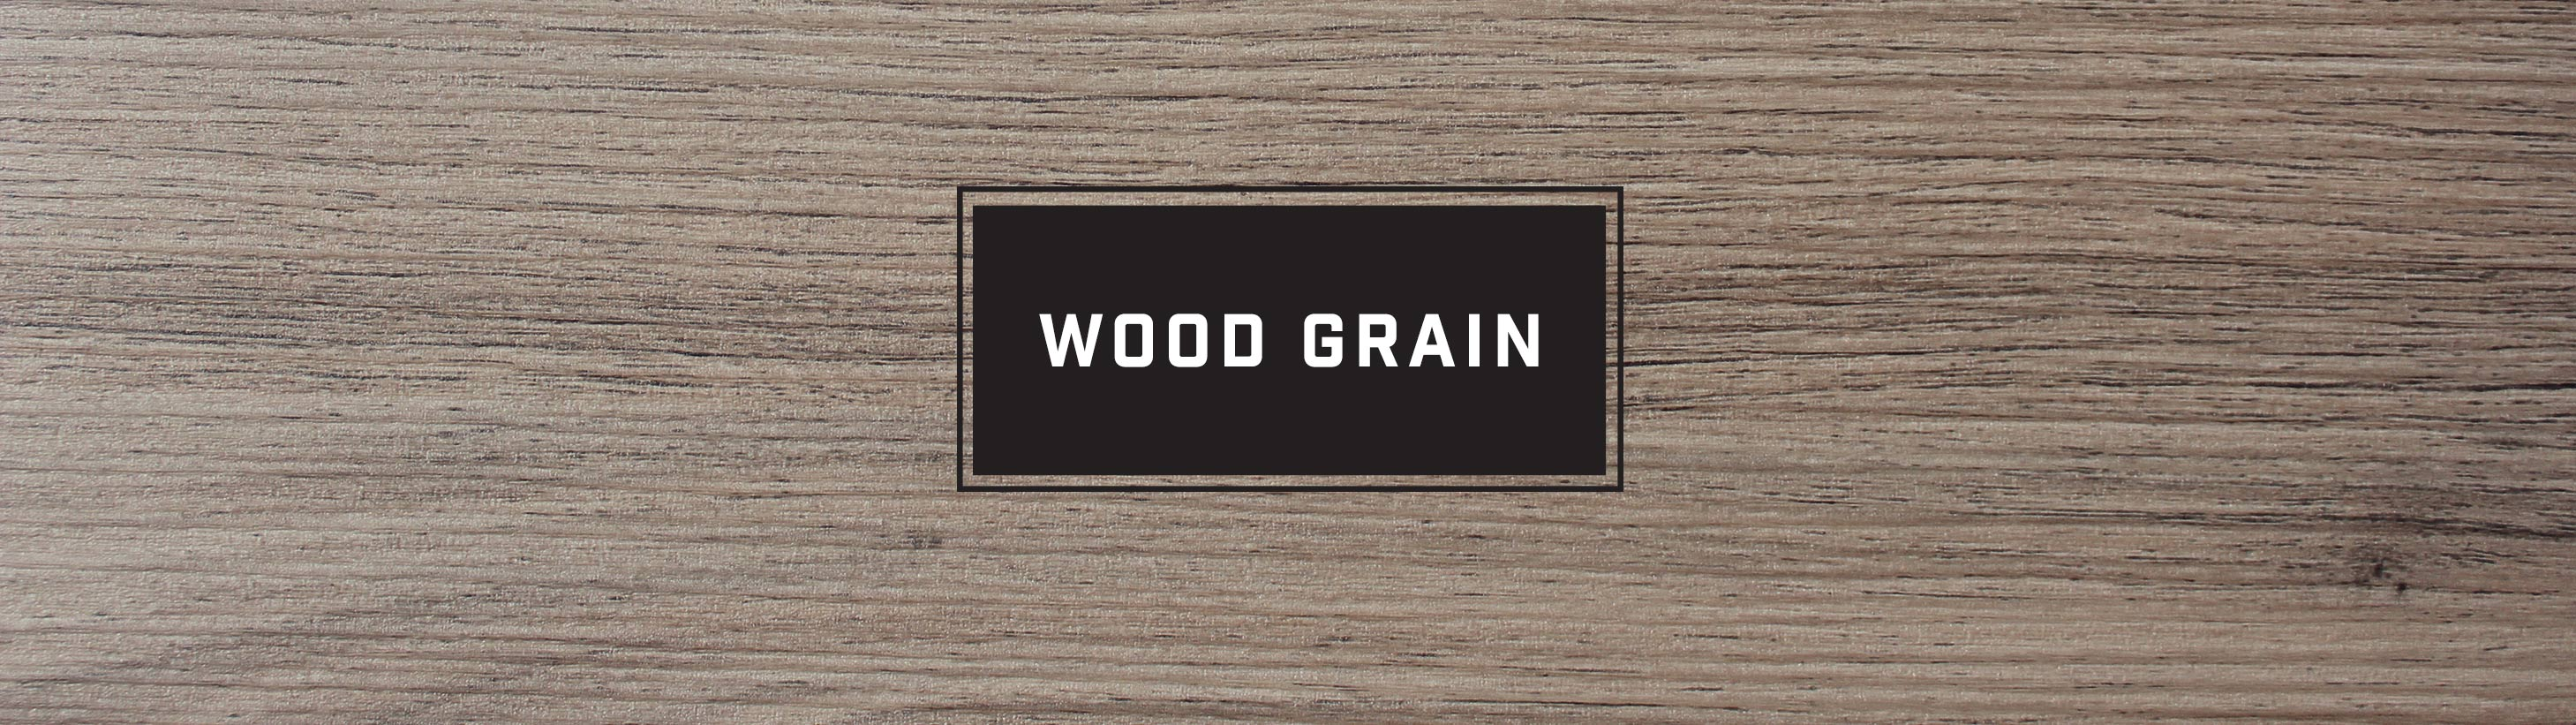 Featured Product: Wood Grain